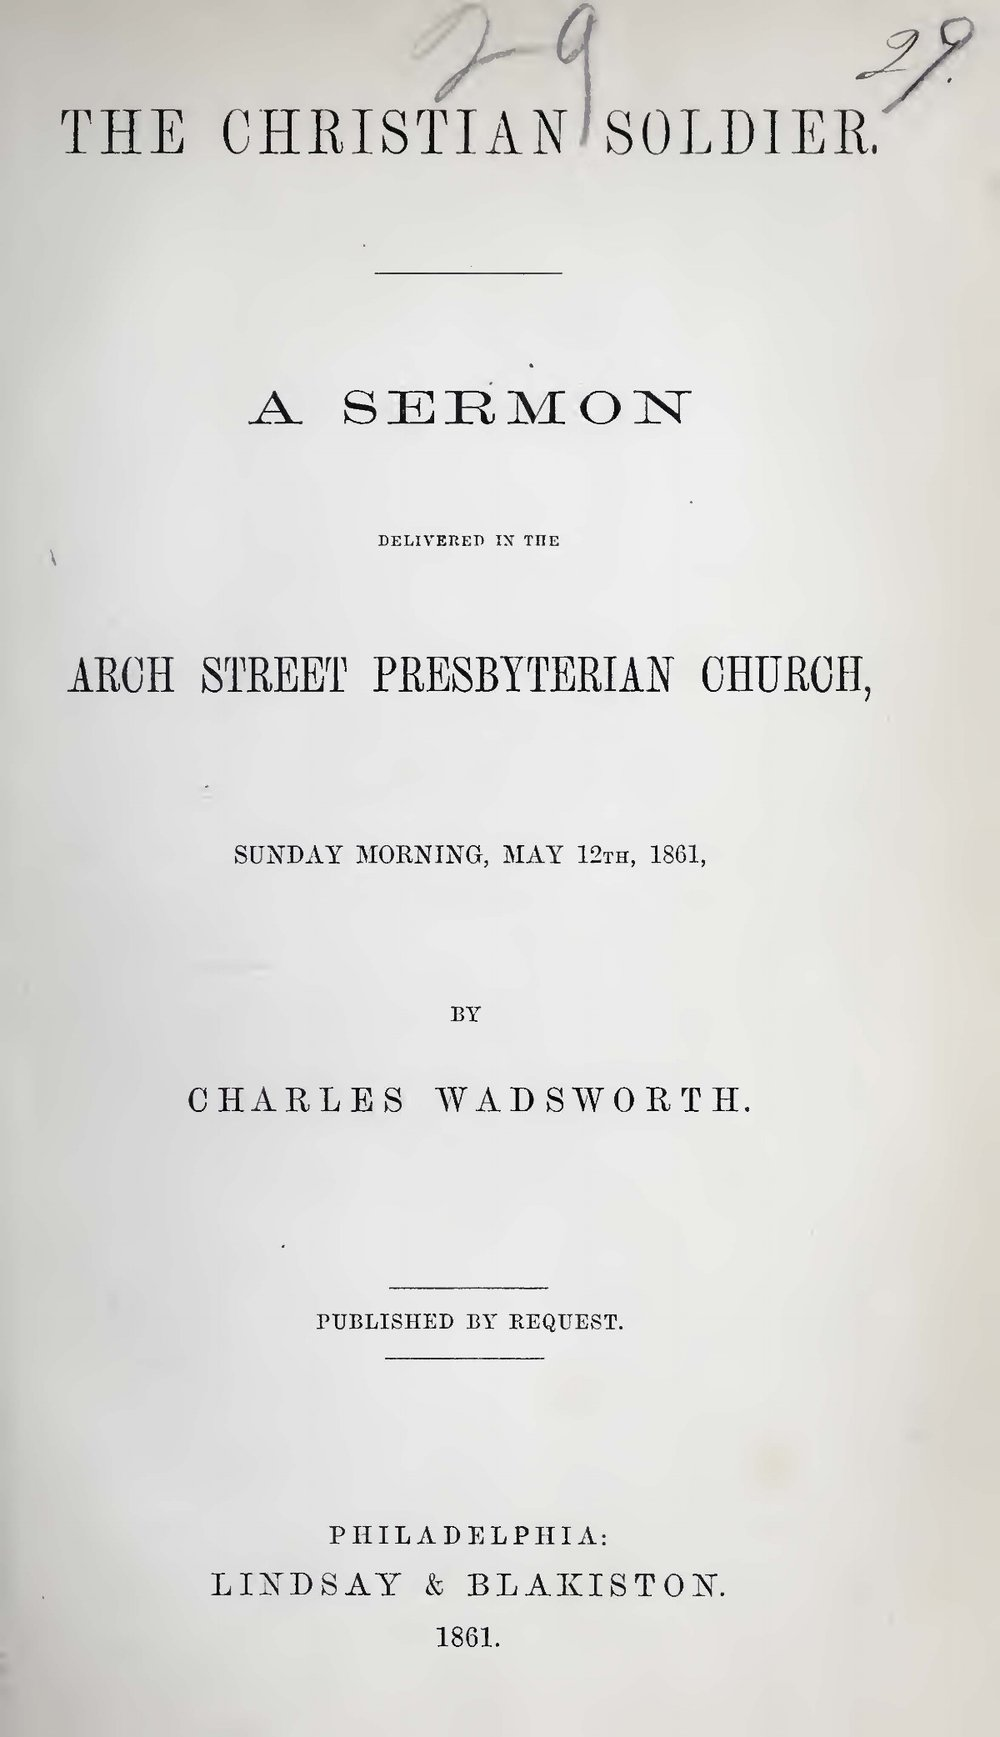 Wadsworth, Charles, The Christian Soldier Title Page.jpg